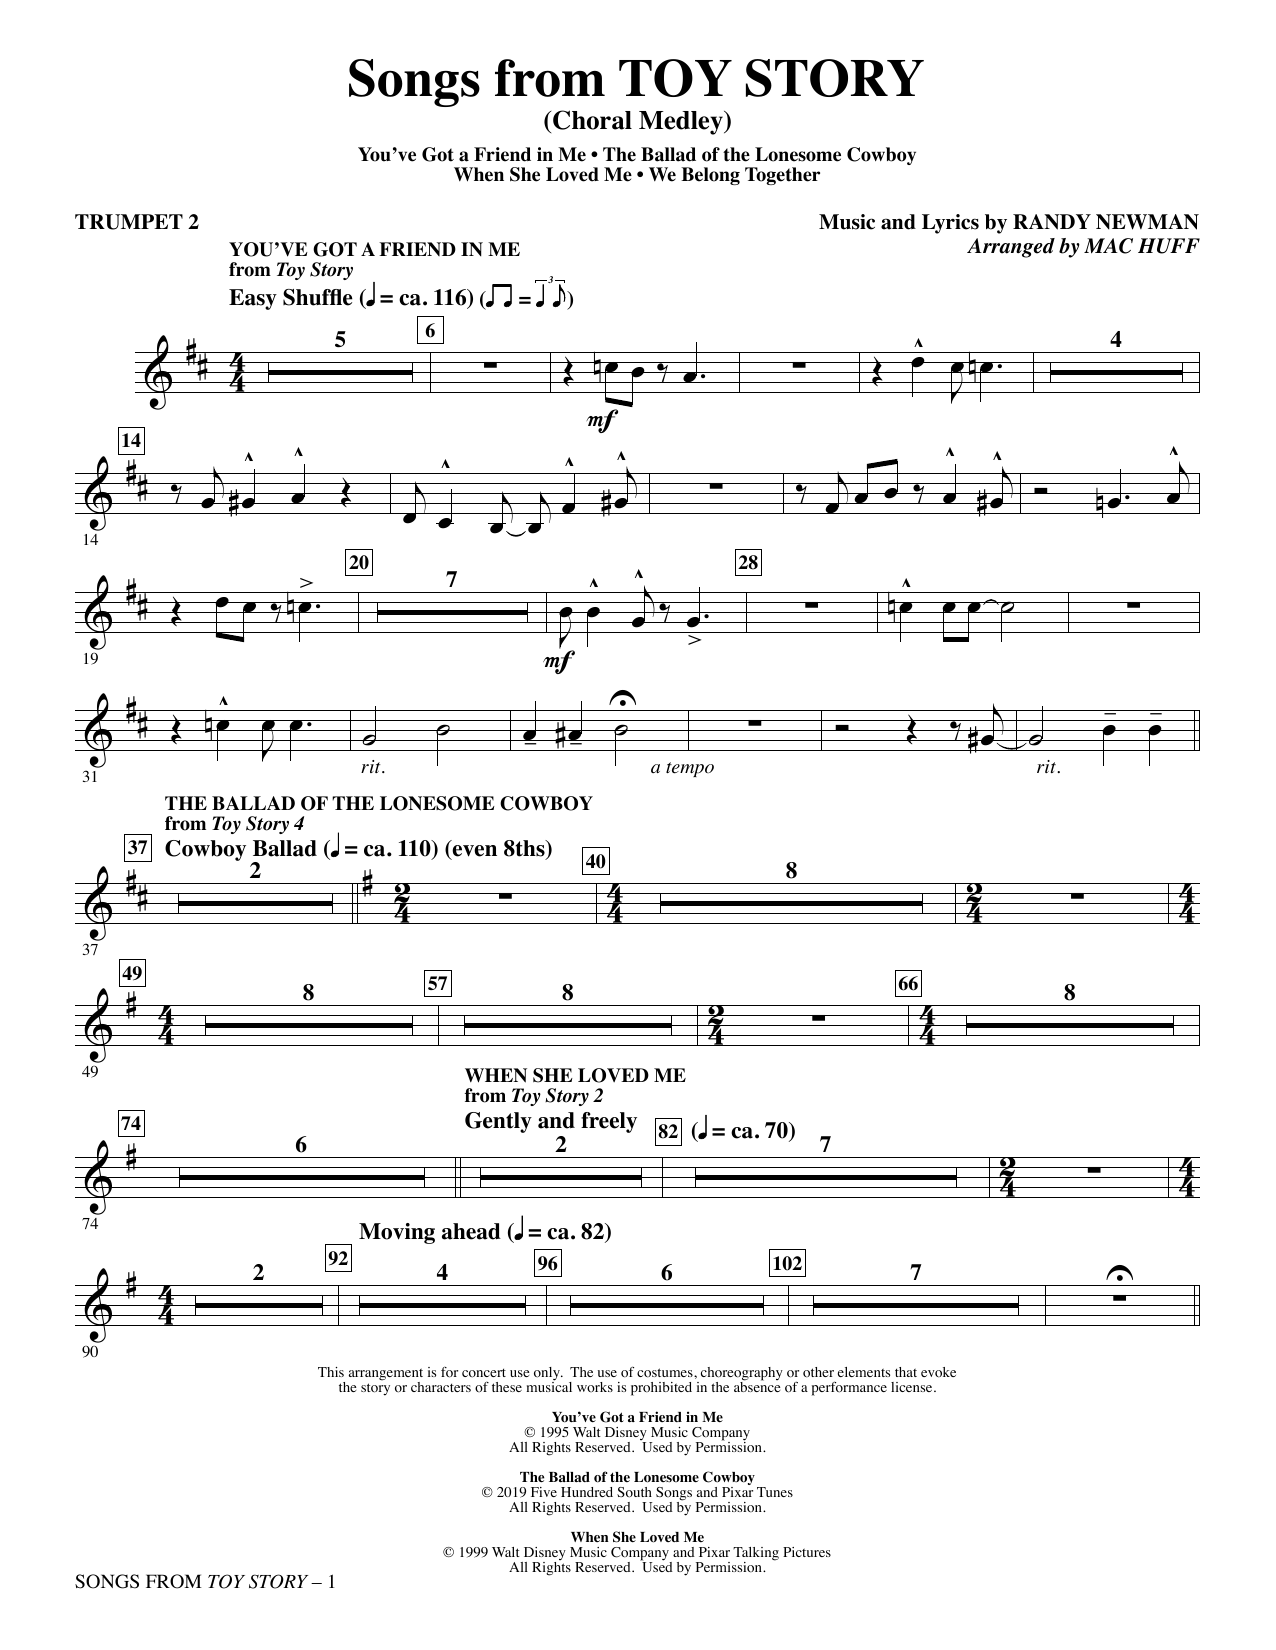 Songs from Toy Story (Choral Medley) (arr. Mac Huff) - Trumpet 2 Sheet Music